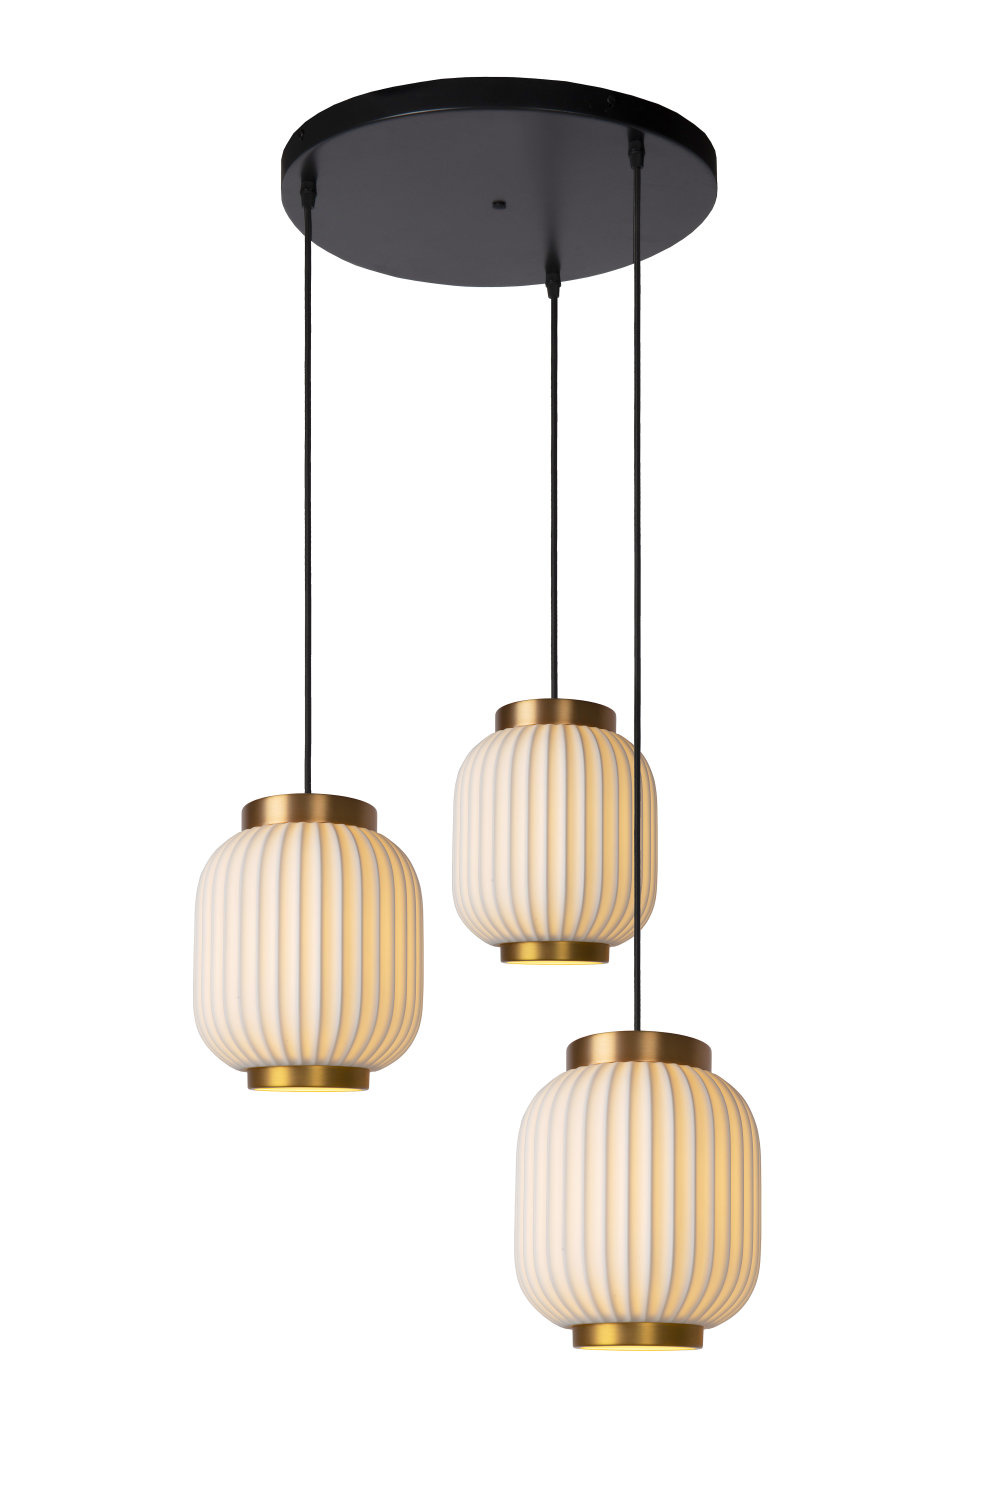 Lucide GOSSE Hanglamp-Wit-3xE27-40W-Porsel.